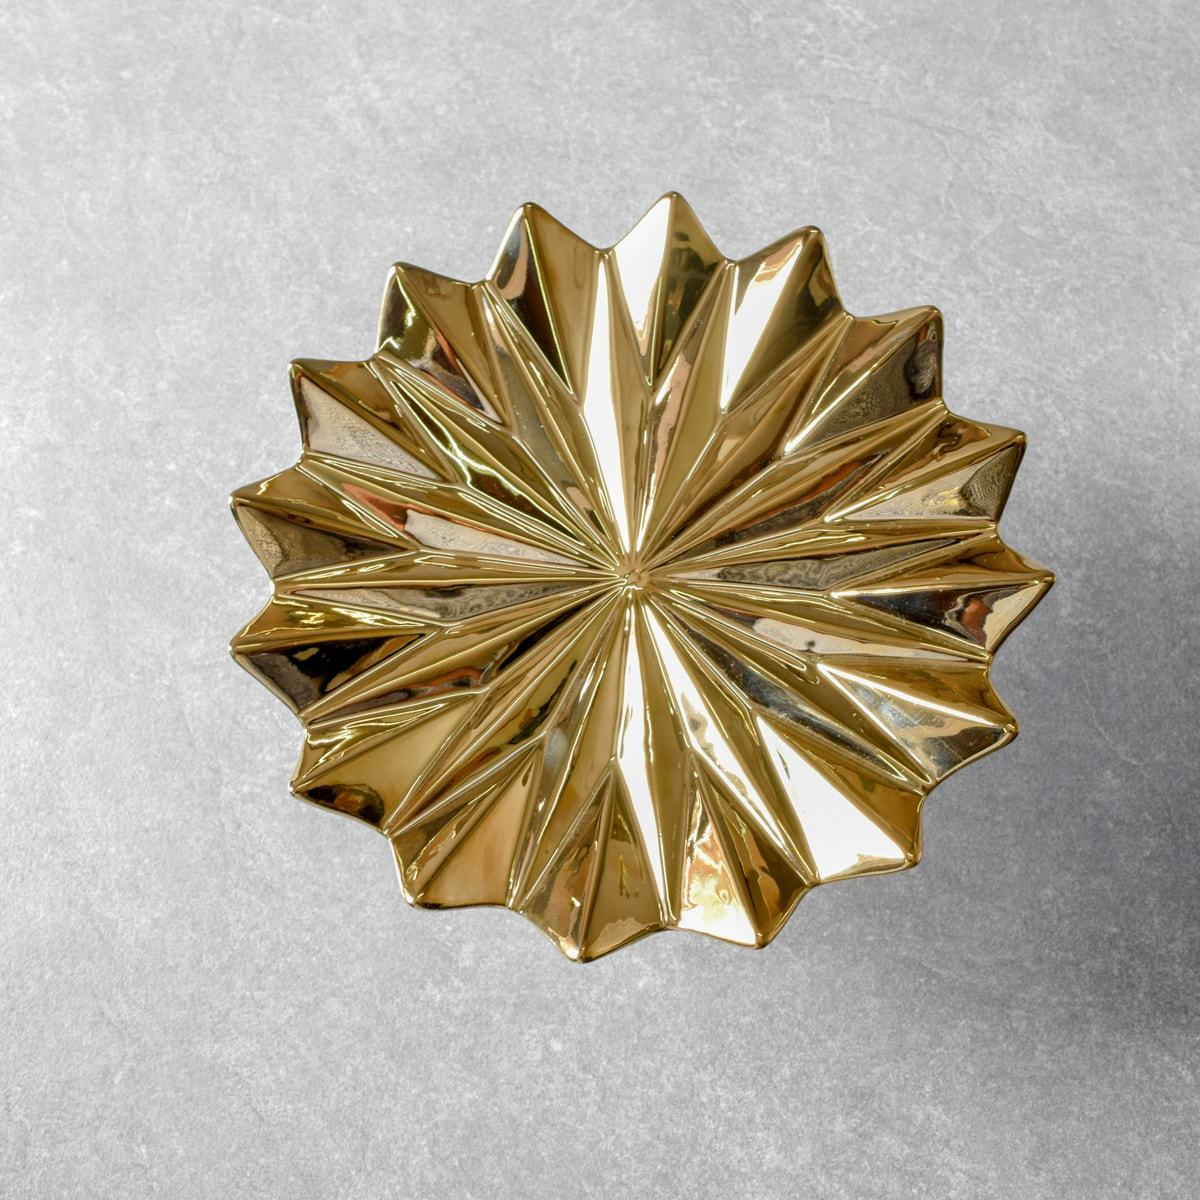 Golden Leaf Ceramic Wall Sculpture (Large) - 1 Piece - Home Artisan